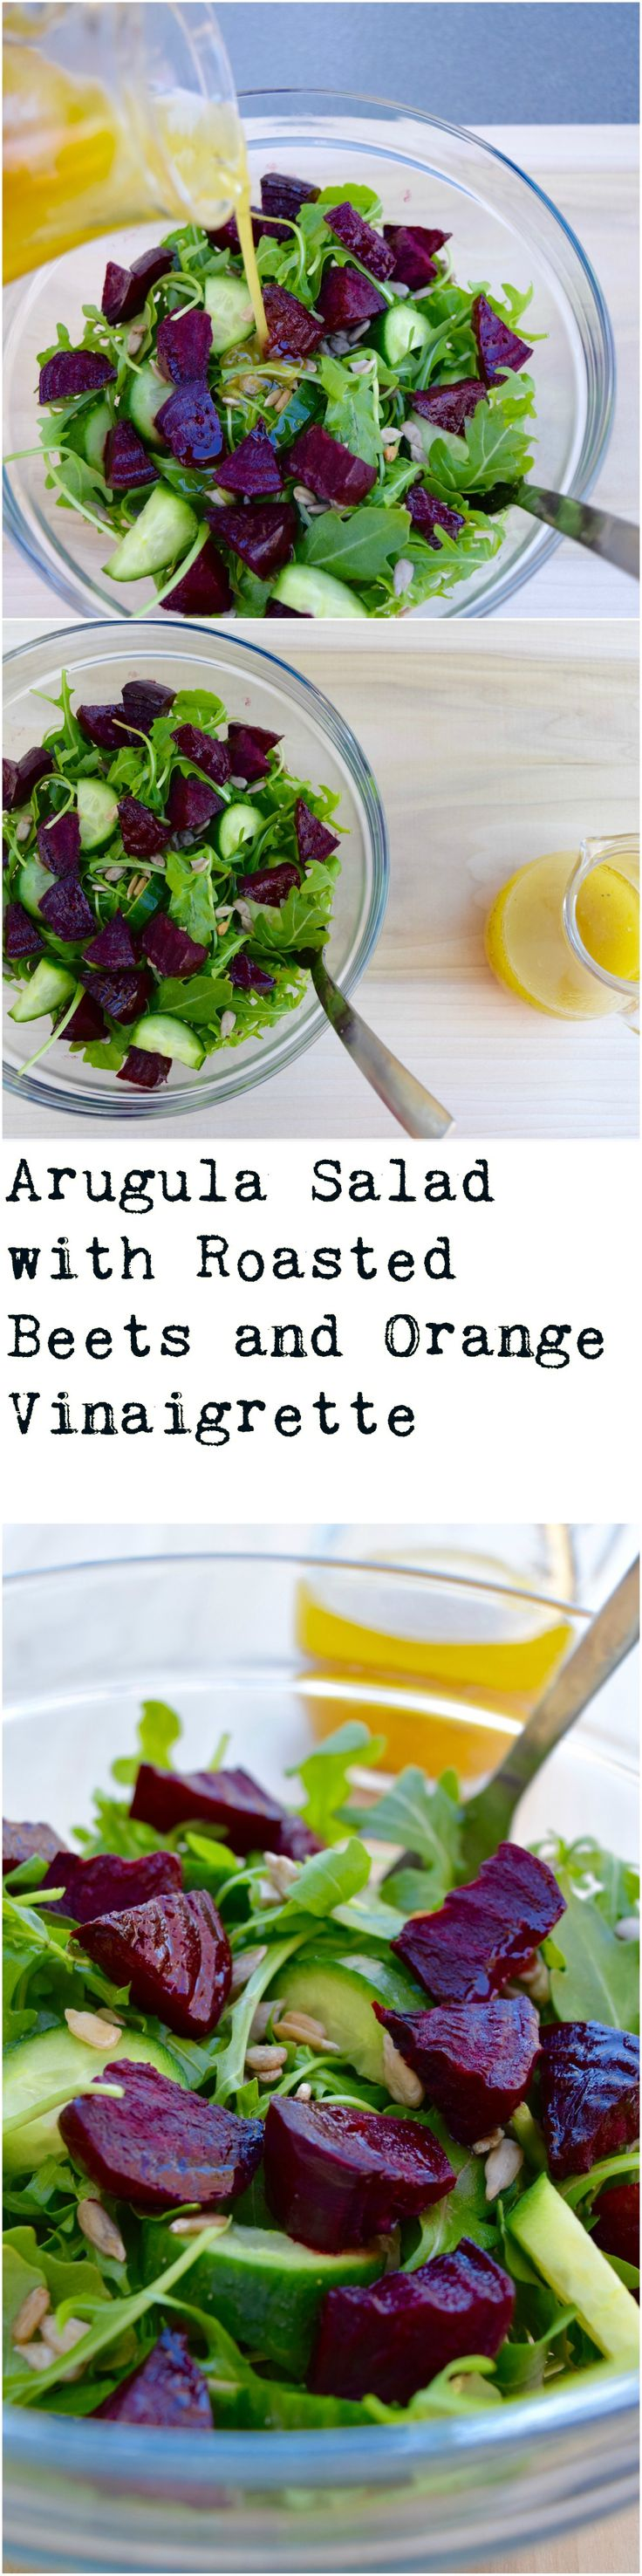 A vibrant winter salad that's vegan, gluten free, delicious, and super easy!